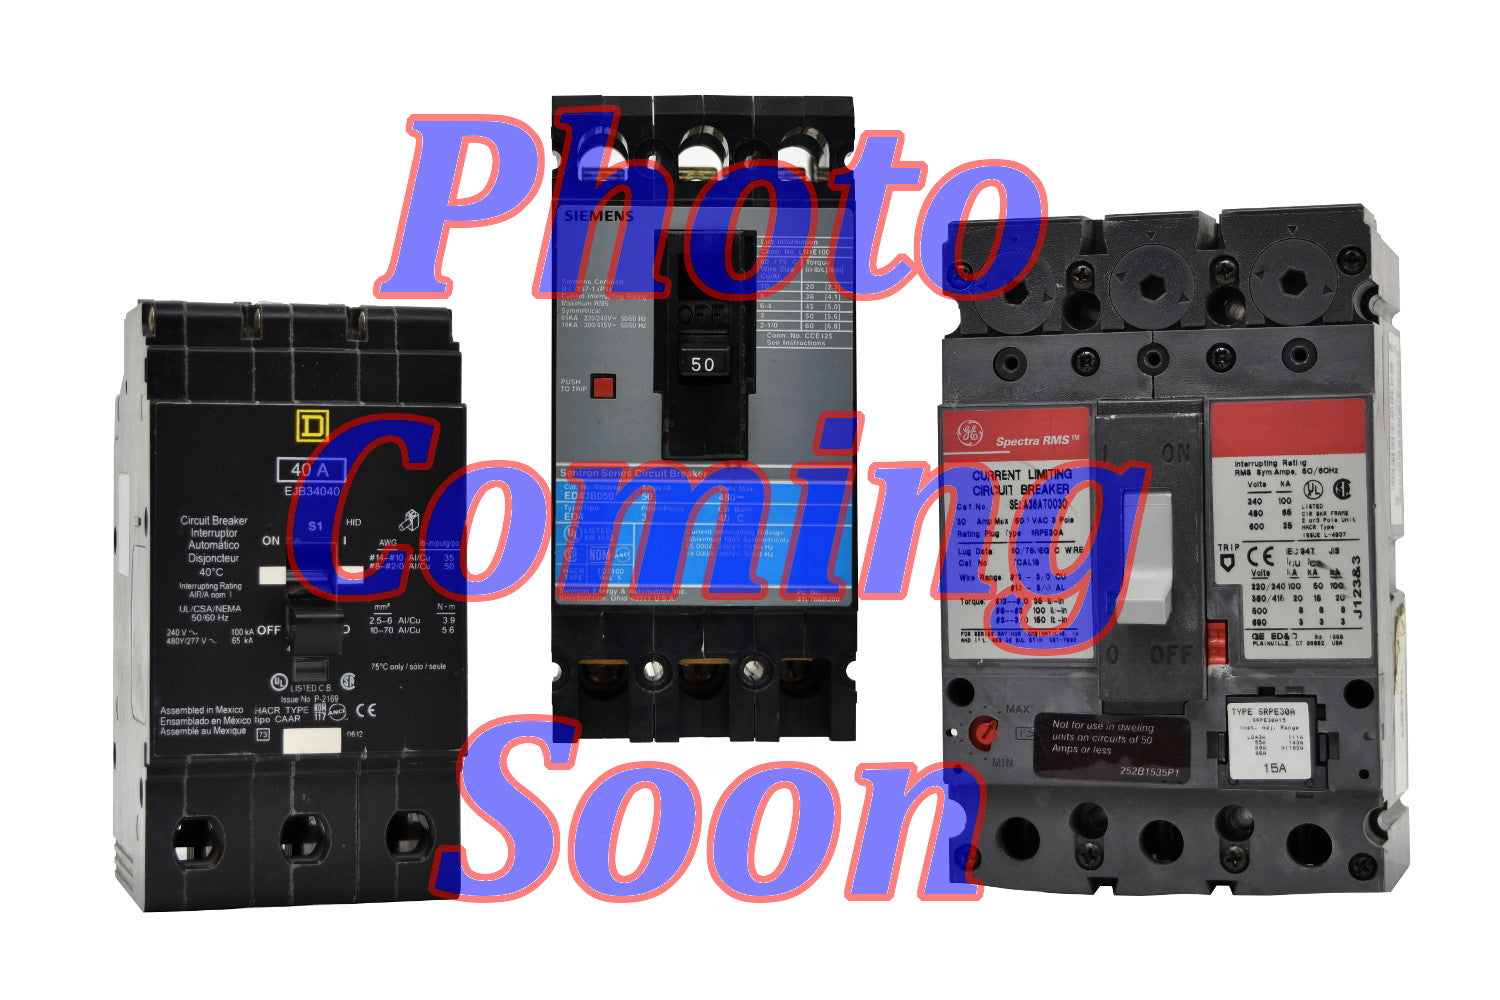 General Electric FCV36TE035R1 Circuit Breakers